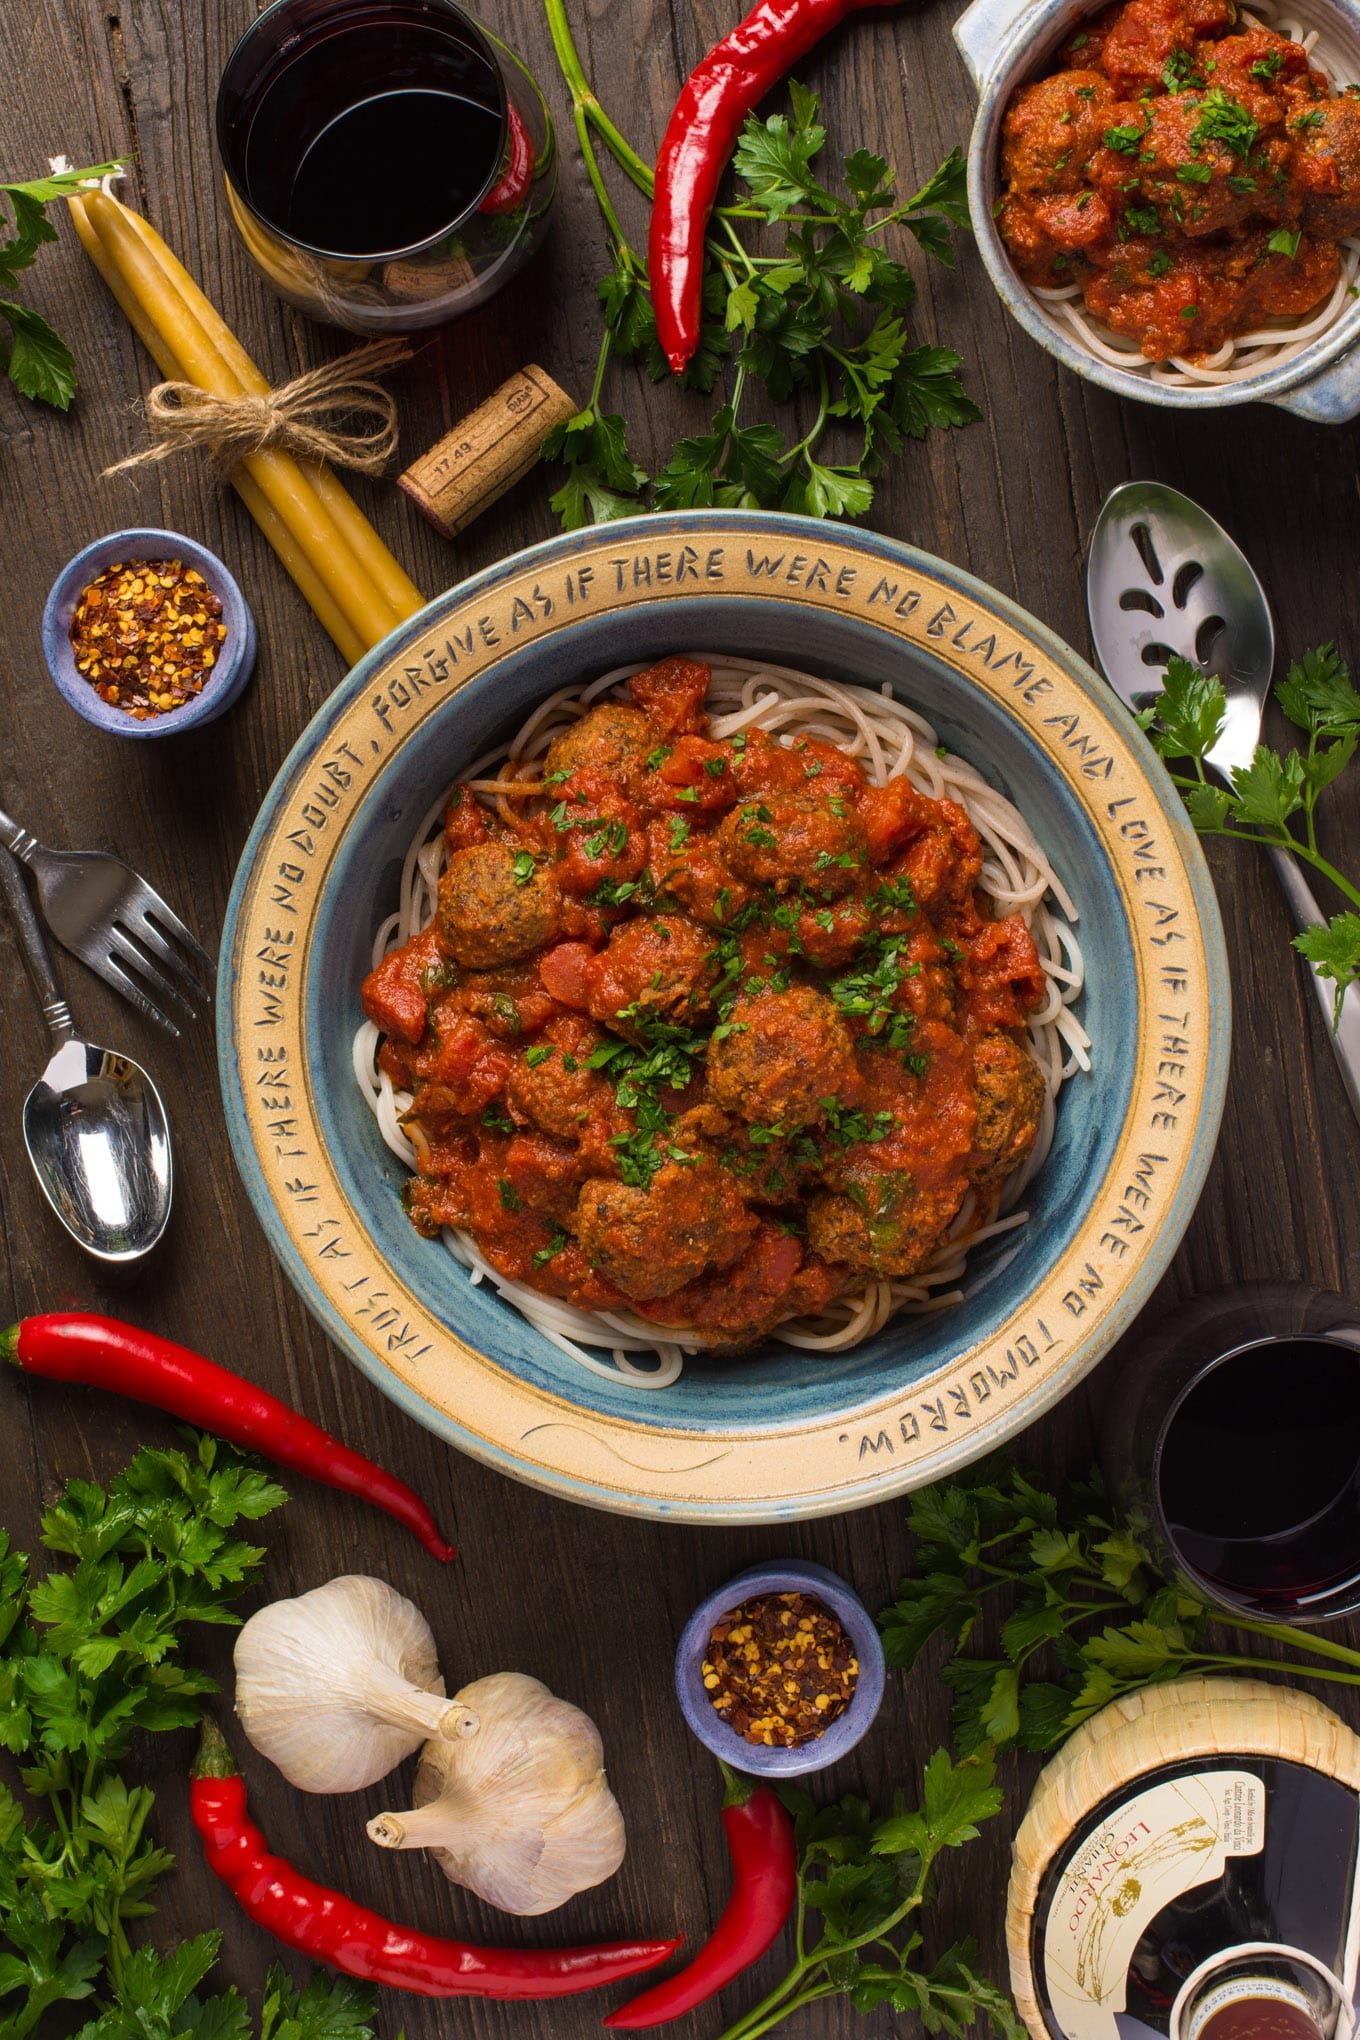 Italian Style Lentil meatballs in marinara sauce in bowls next to wine and fresh vegetables